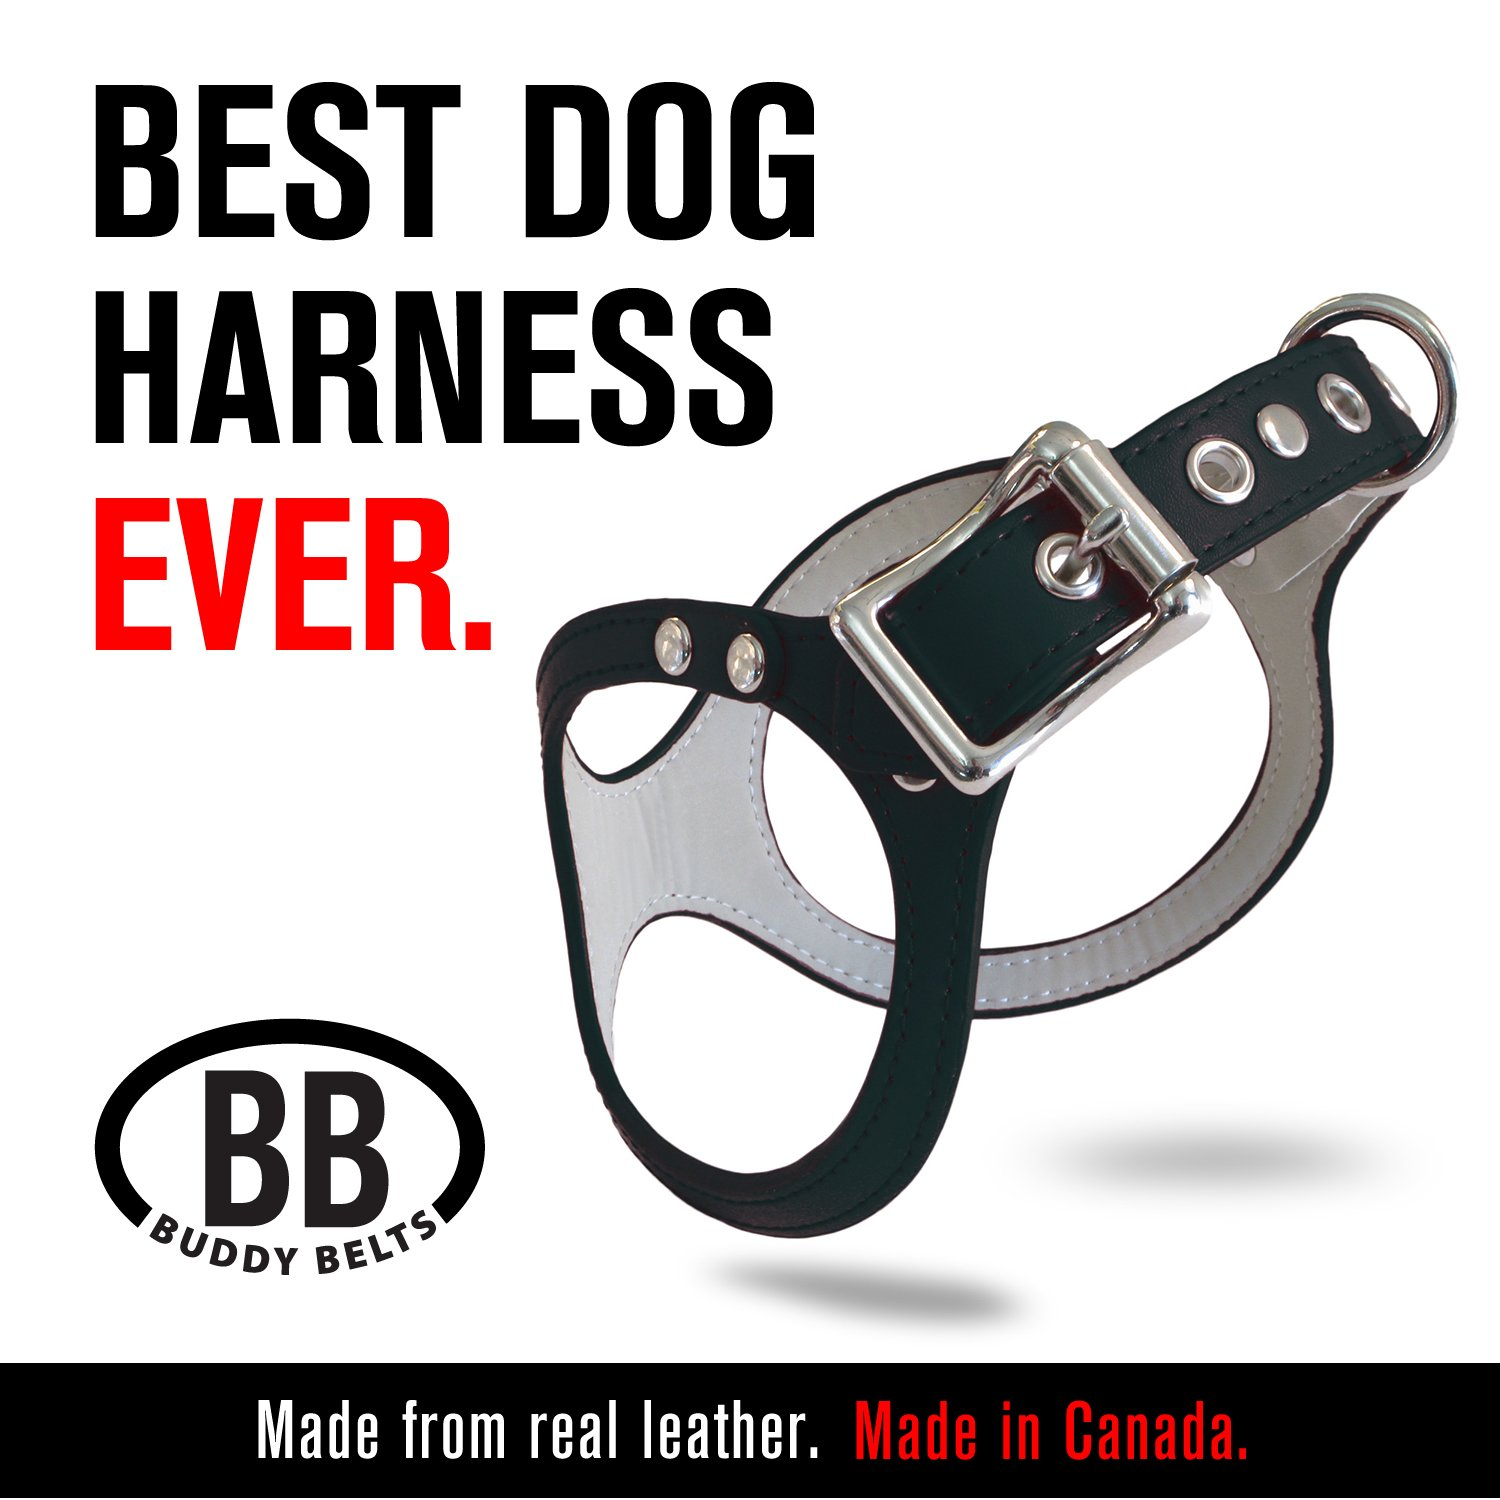 Black 3.5 Black 3.5 buddy-belts ORIGINAL DURABLE Classic LEATHER Dog Harness